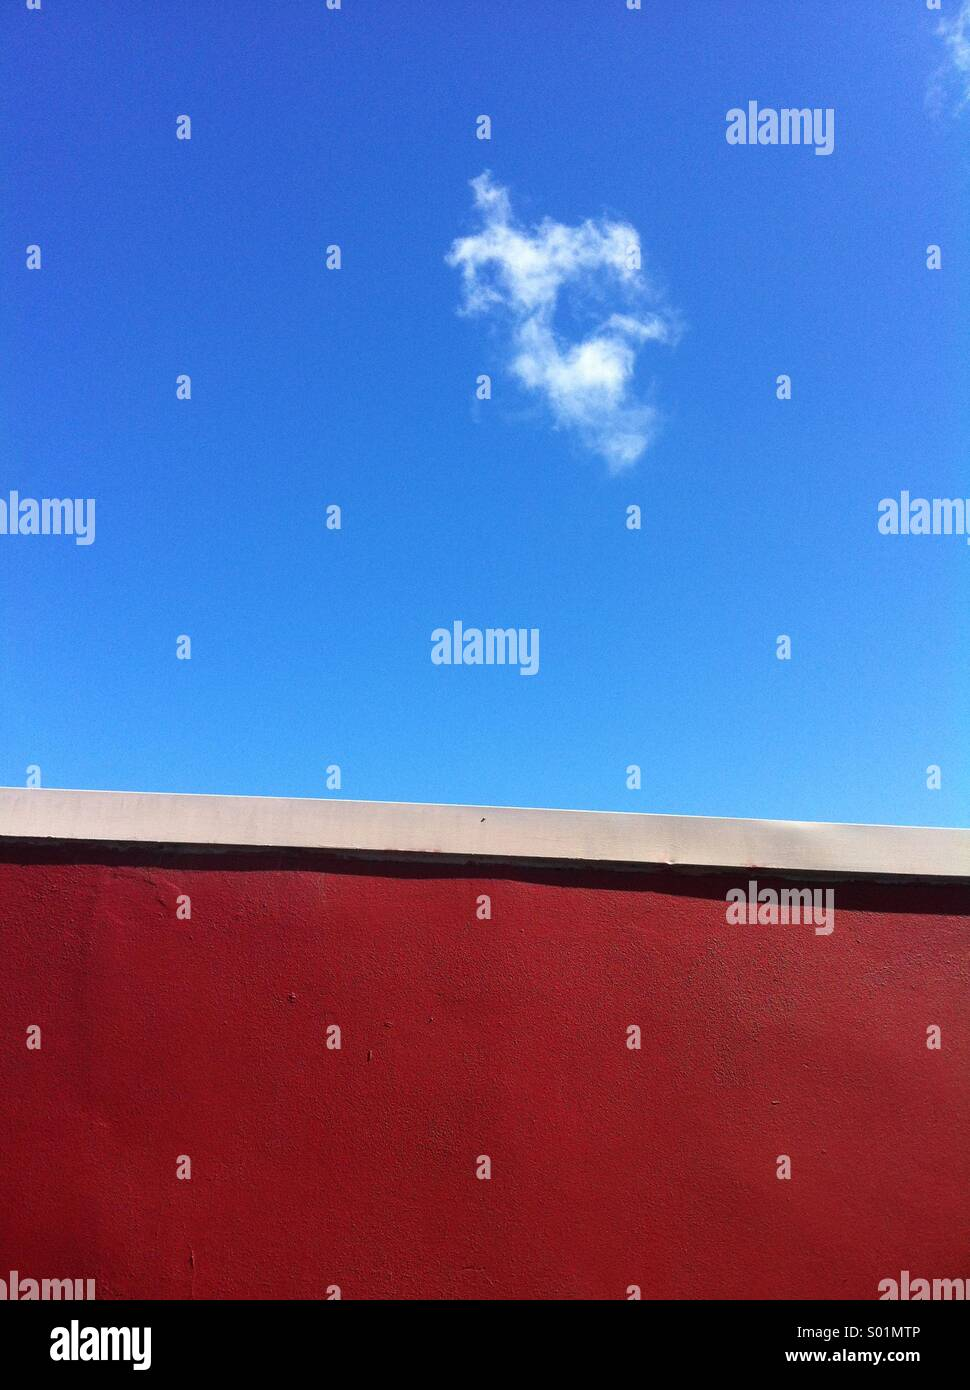 Red wall and blue sky with cloud - Stock Image